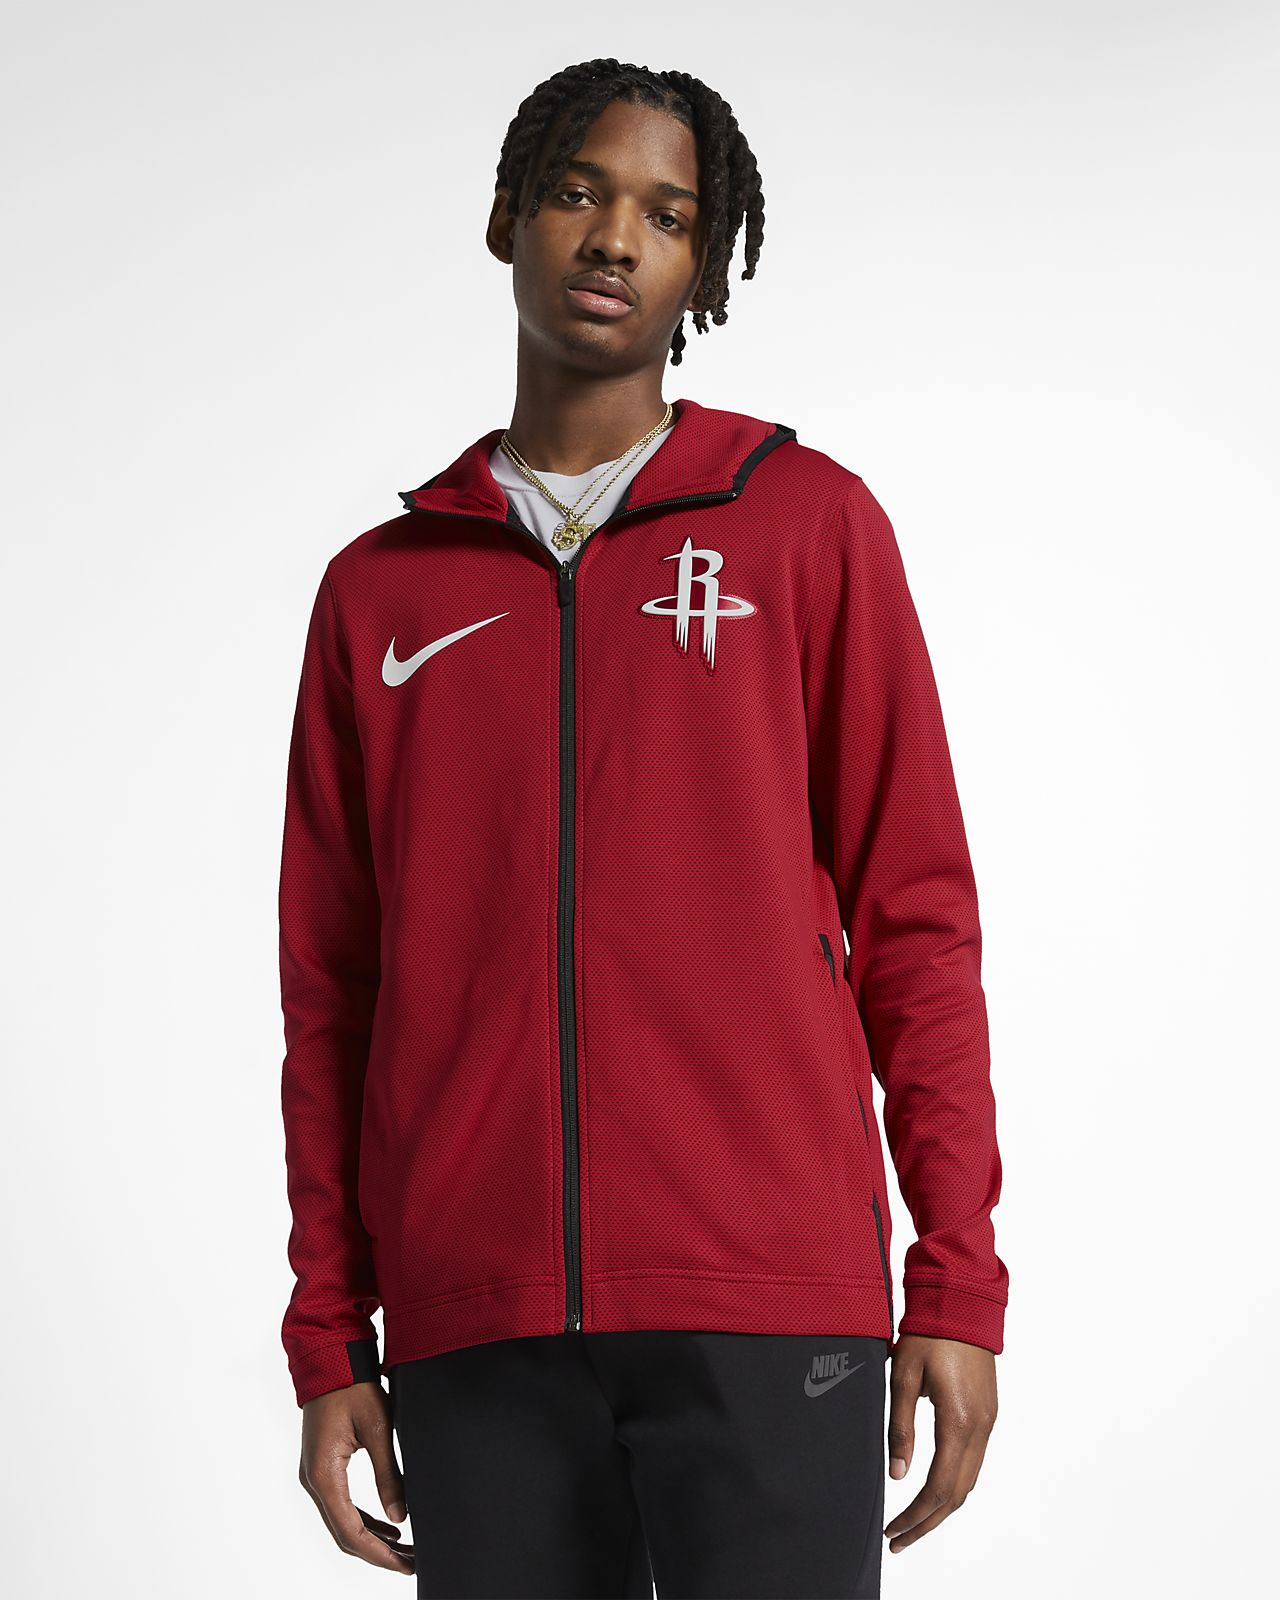 ... Sudadera con capucha de la NBA para hombre Houston Rockets Nike Therma  Flex Showtime d9315cd1ec1